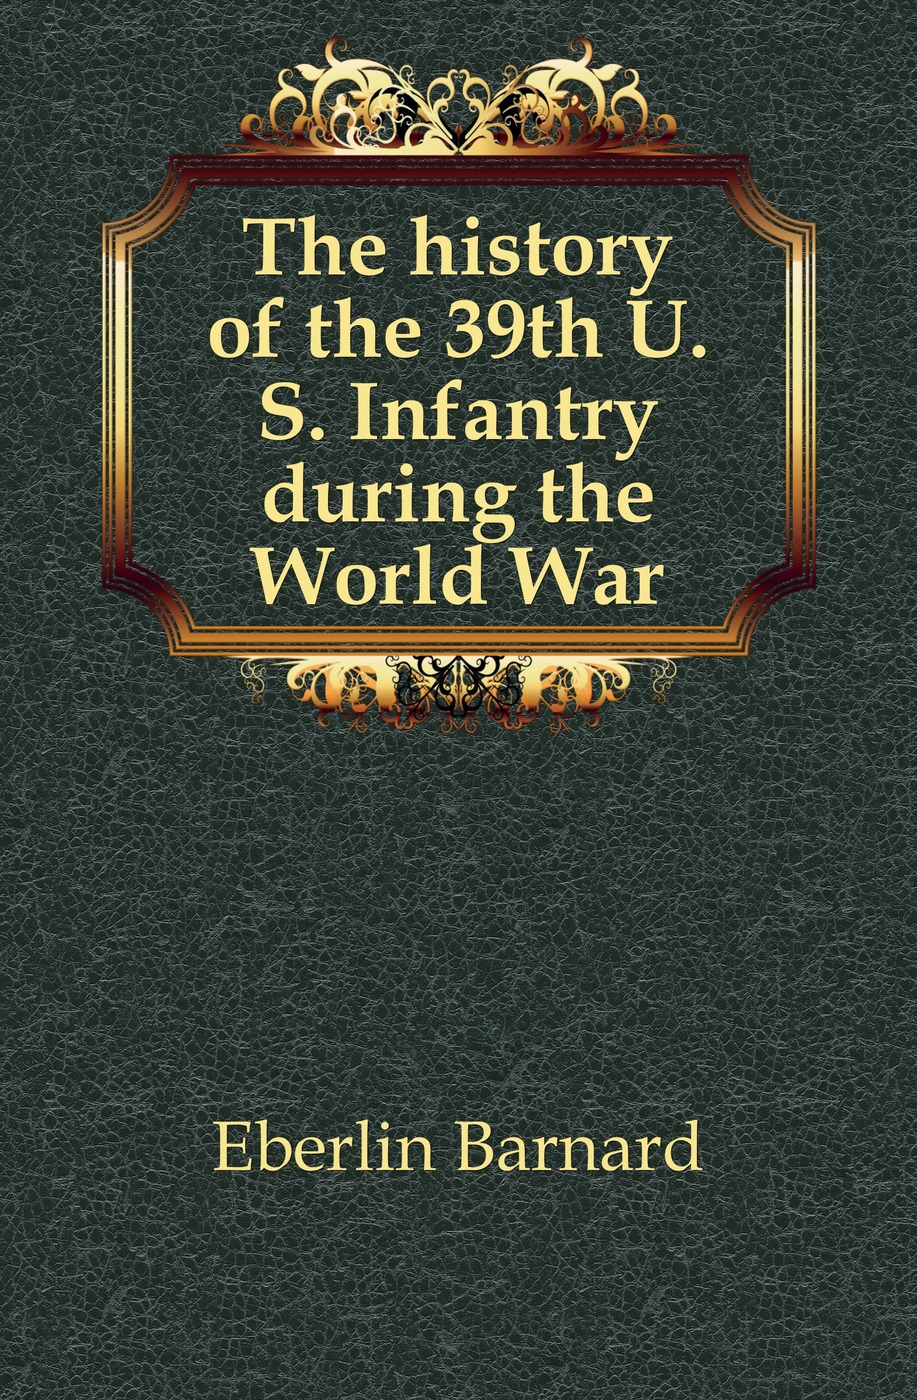 Eberlin Barnard The history of the 39th U. S. Infantry during World War